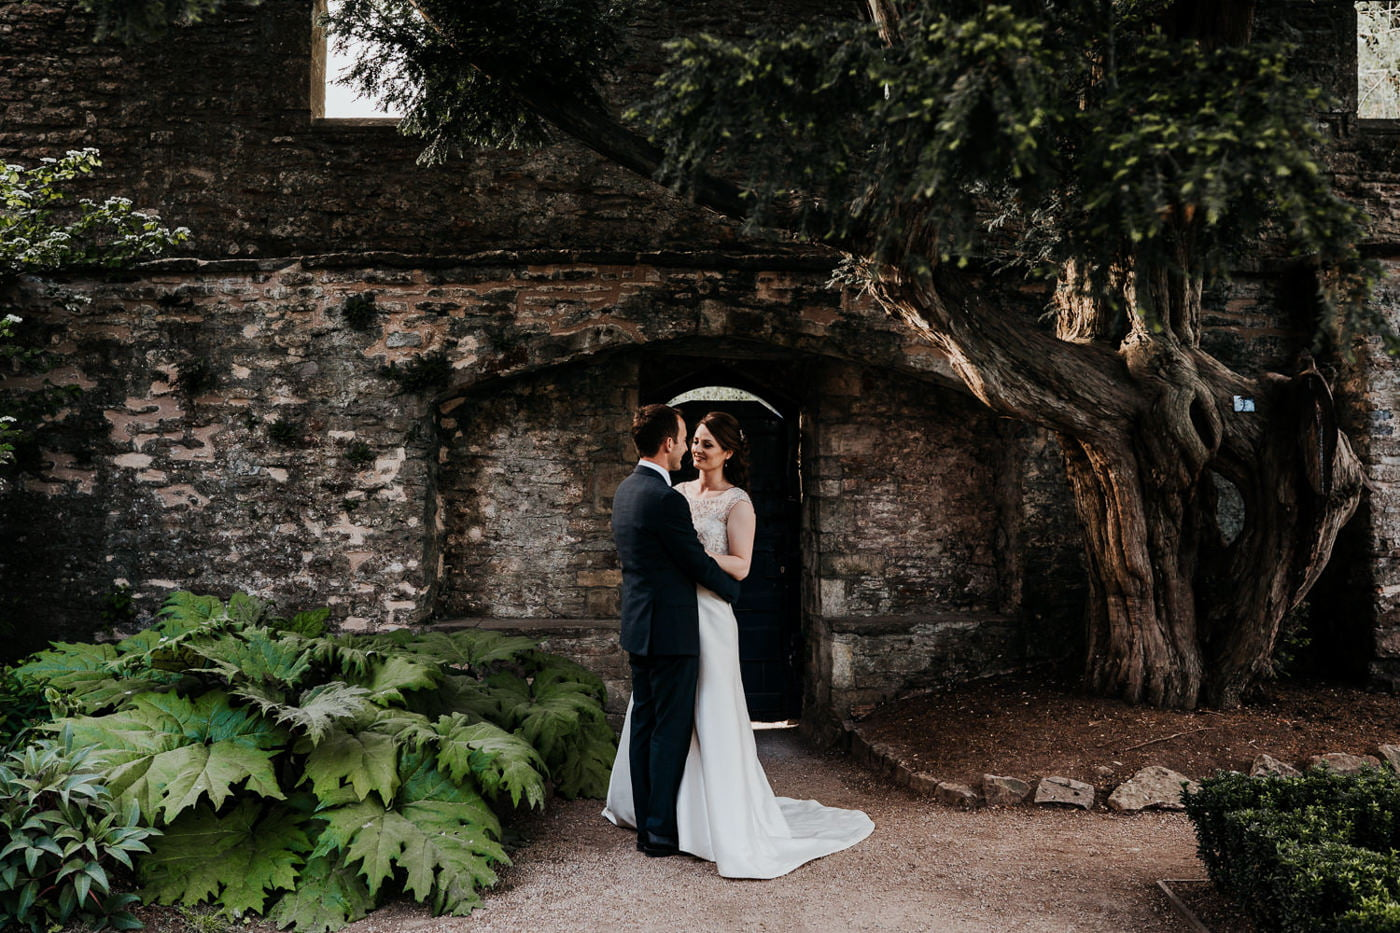 bride and groom portraits in garden